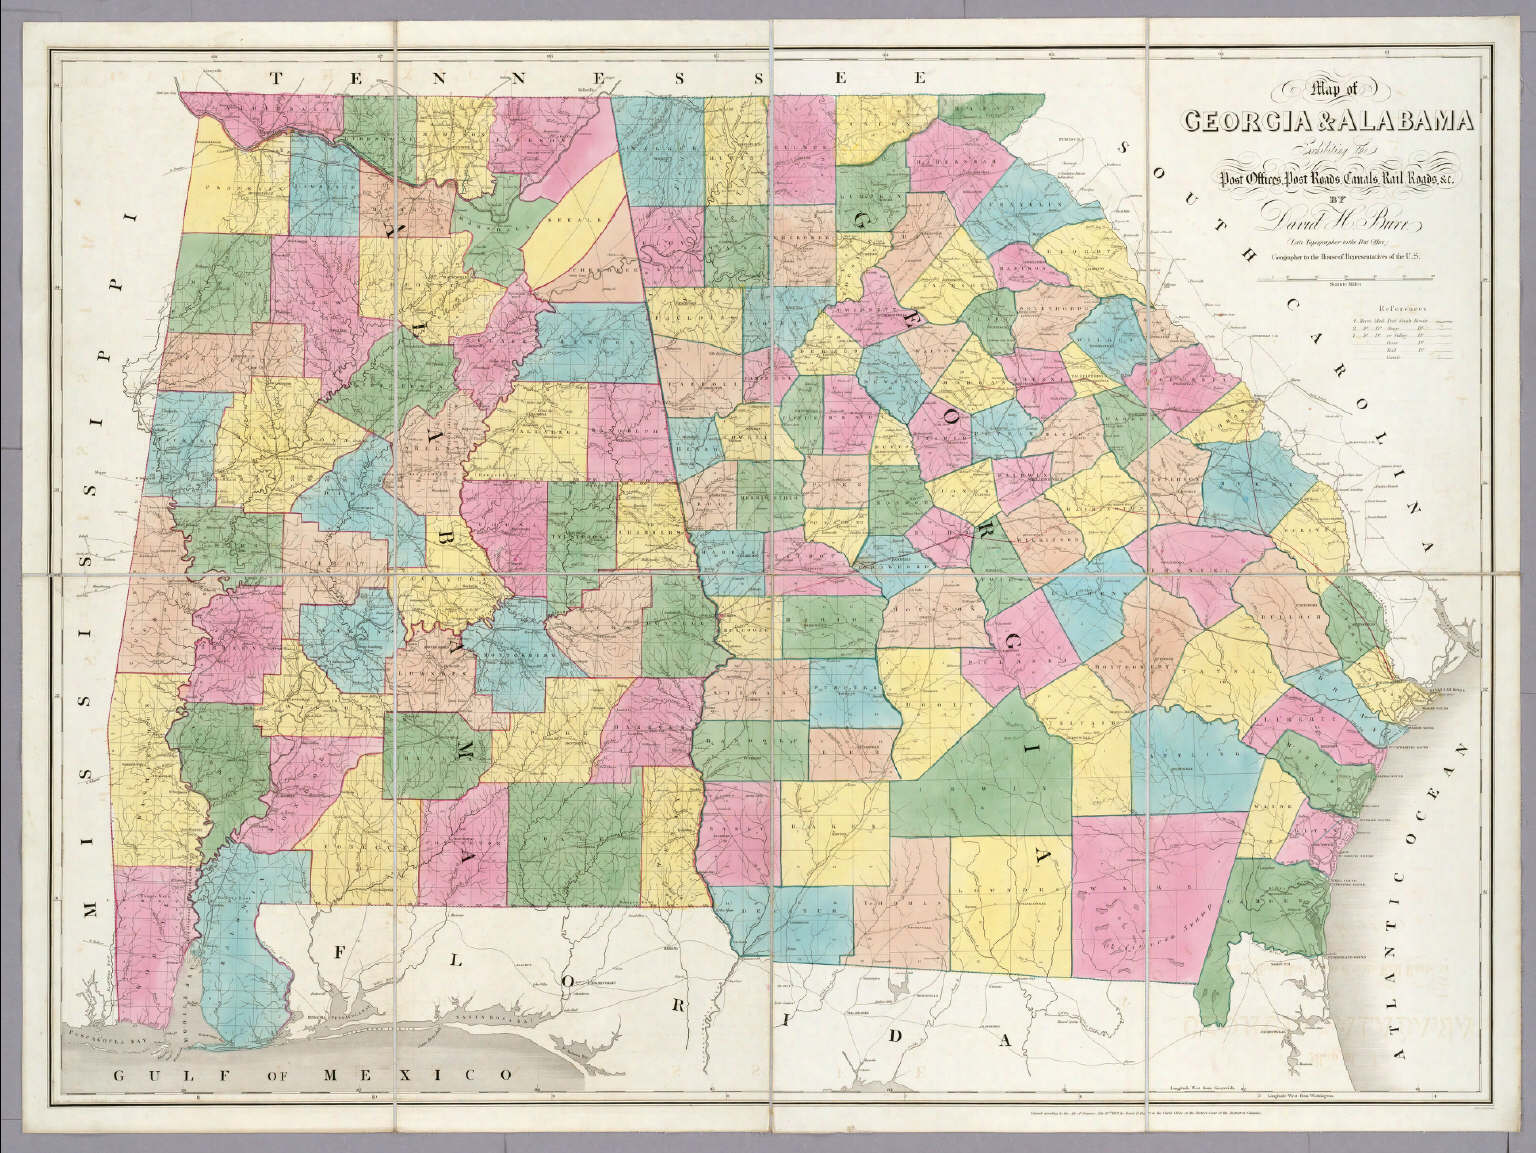 of Georgia & Alabama Burr David H 1803 1875 1839